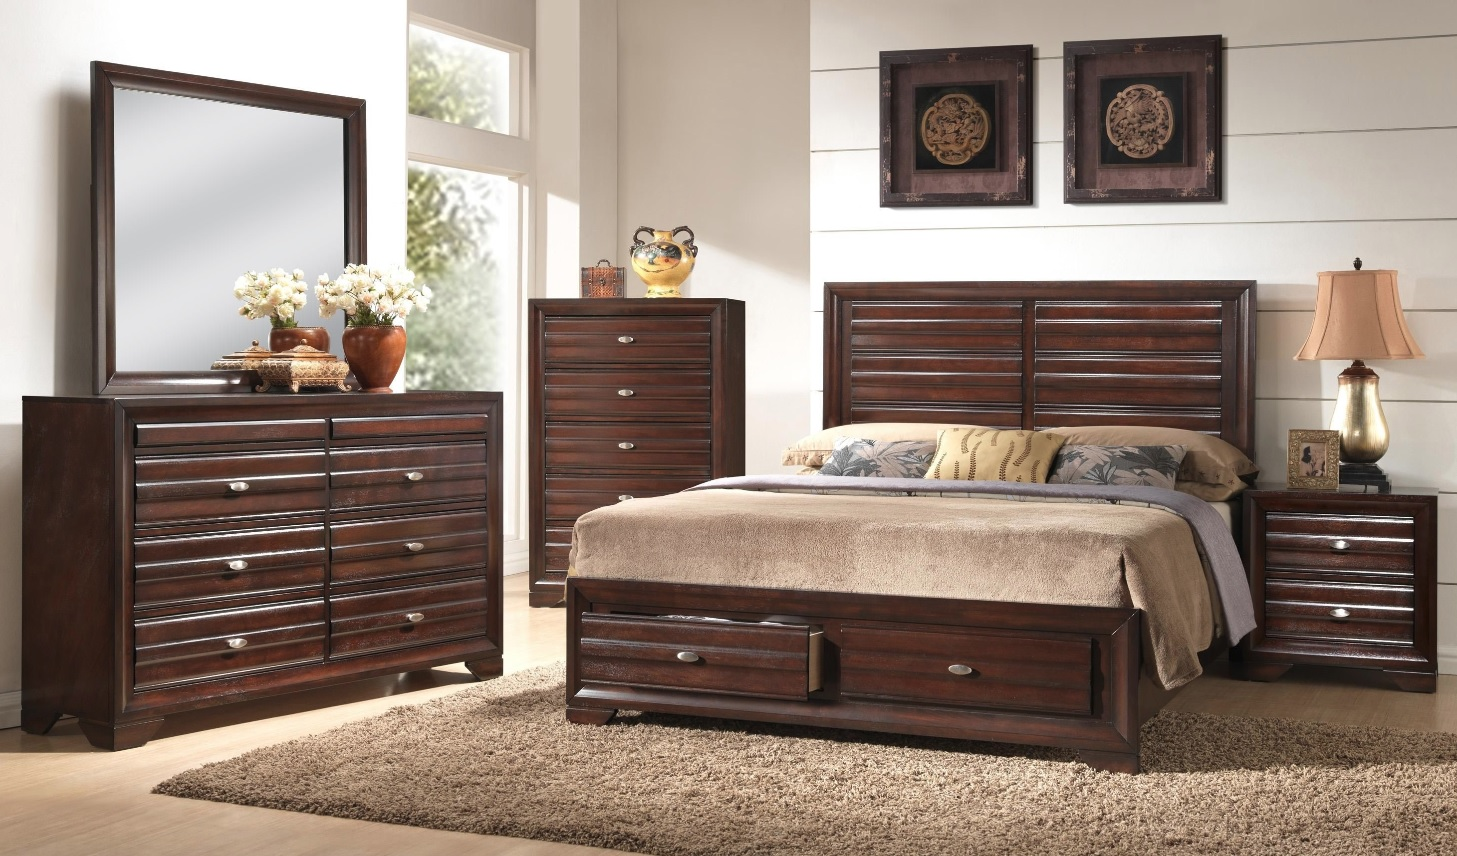 stella collection bedroom set espresso finish b4550 casye furniturecasye furniture